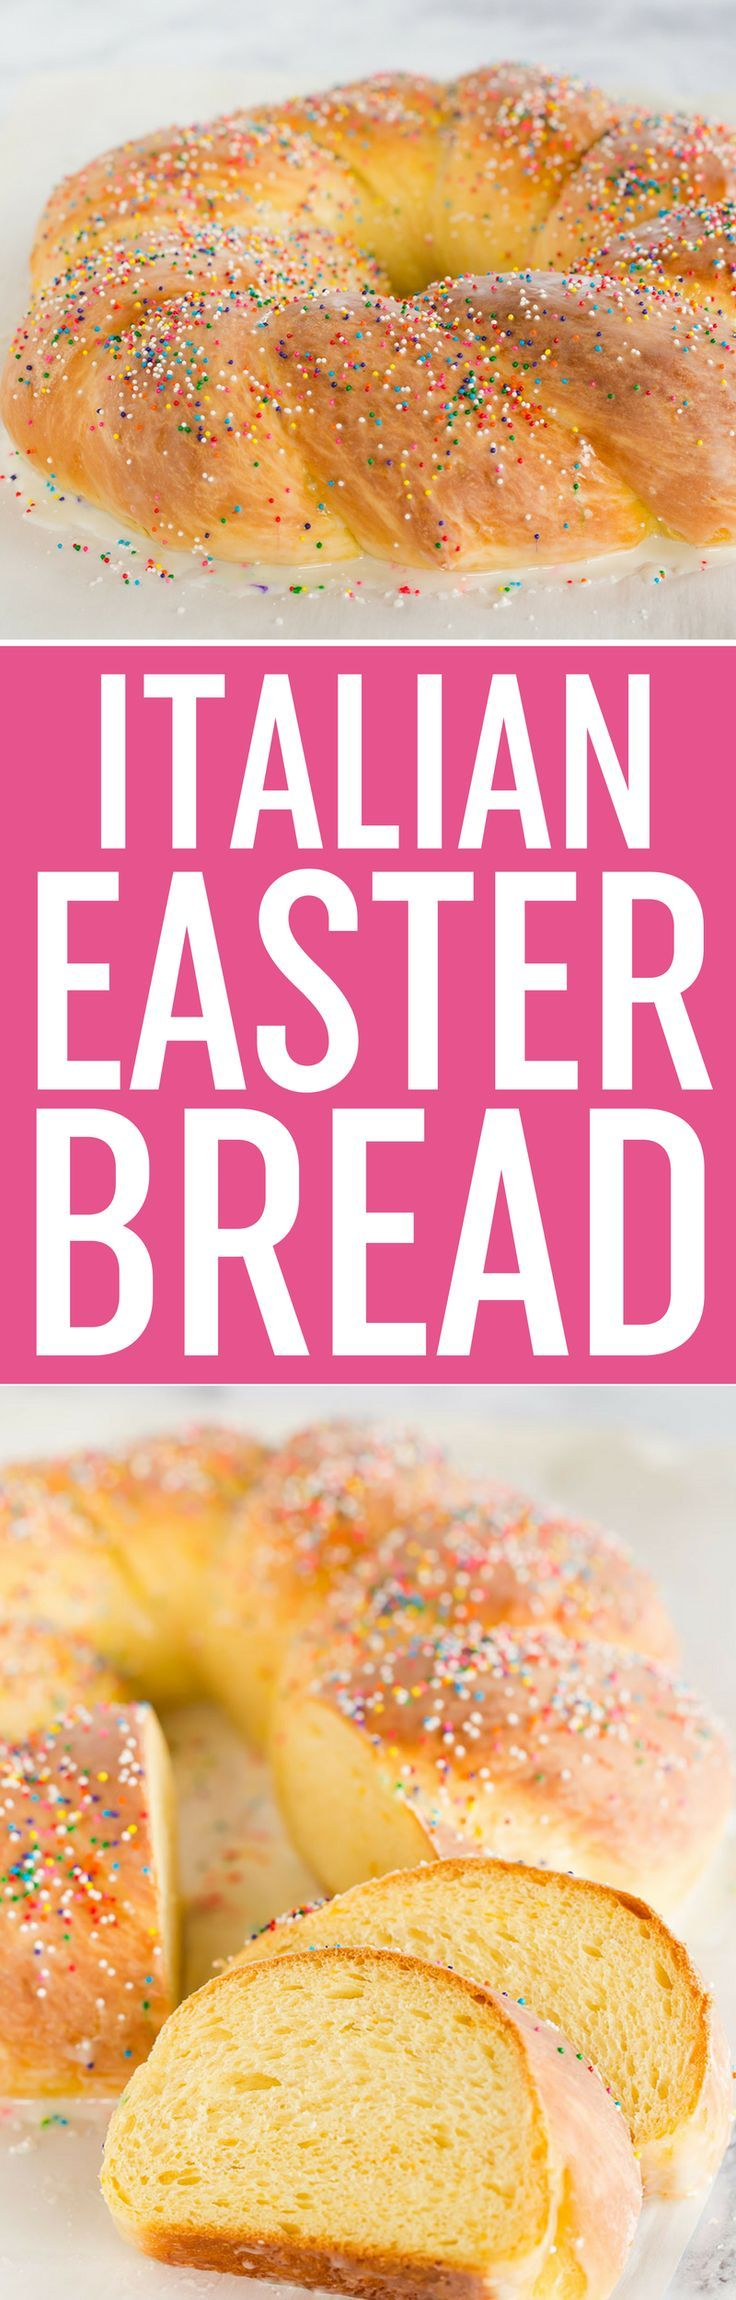 17 Best ideas about Italian Easter Bread on Pinterest | Easter, Easter ...